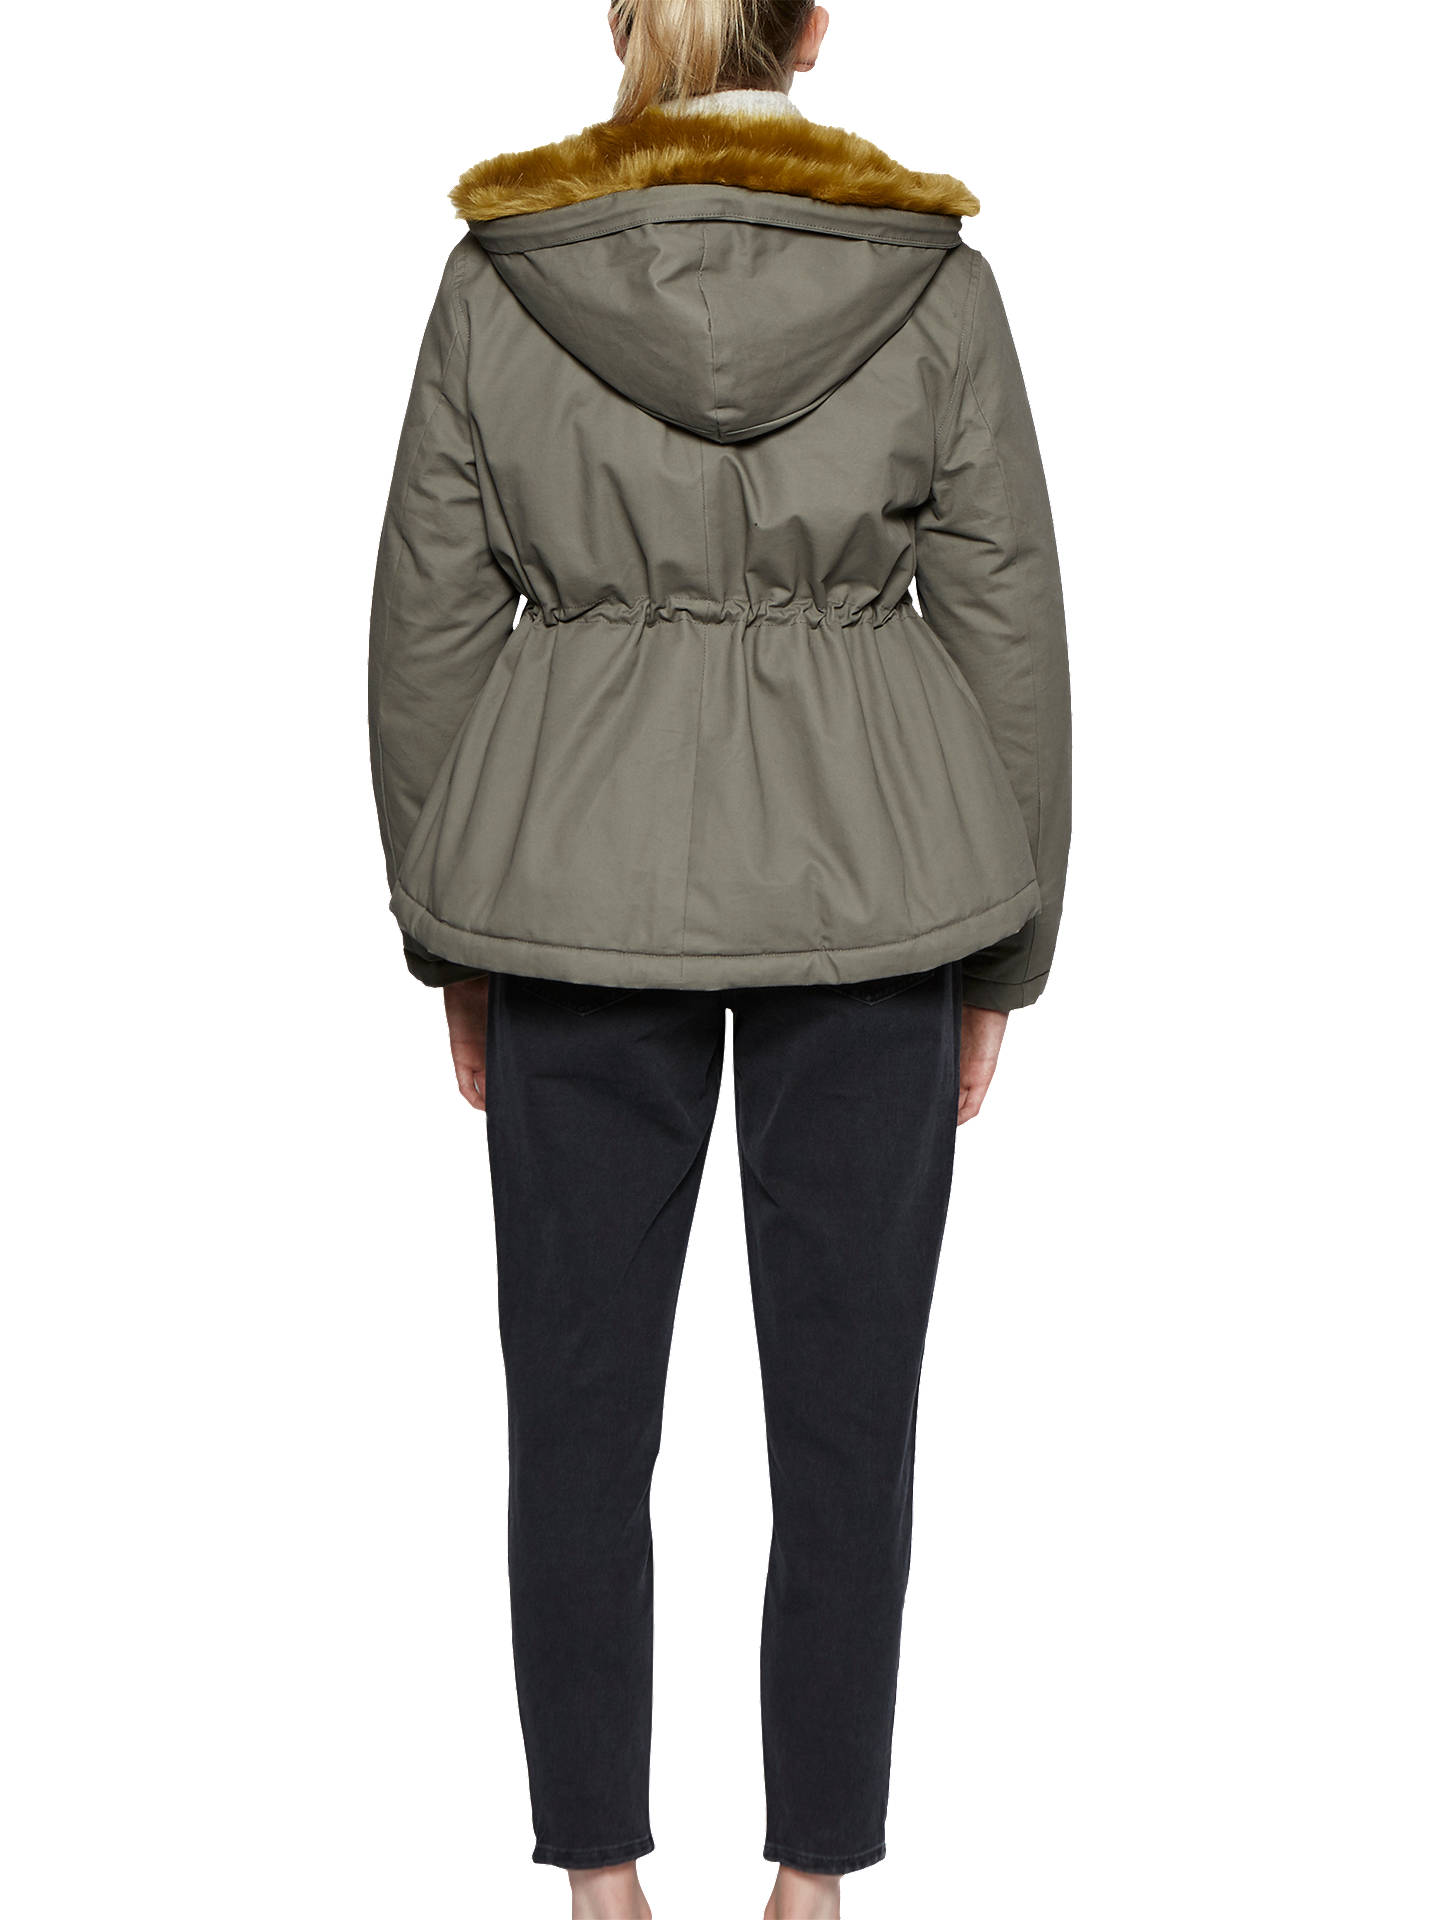 BuyFrench Connection Syble Parka, Dusty Olive/Willow, 8 Online at johnlewis.com